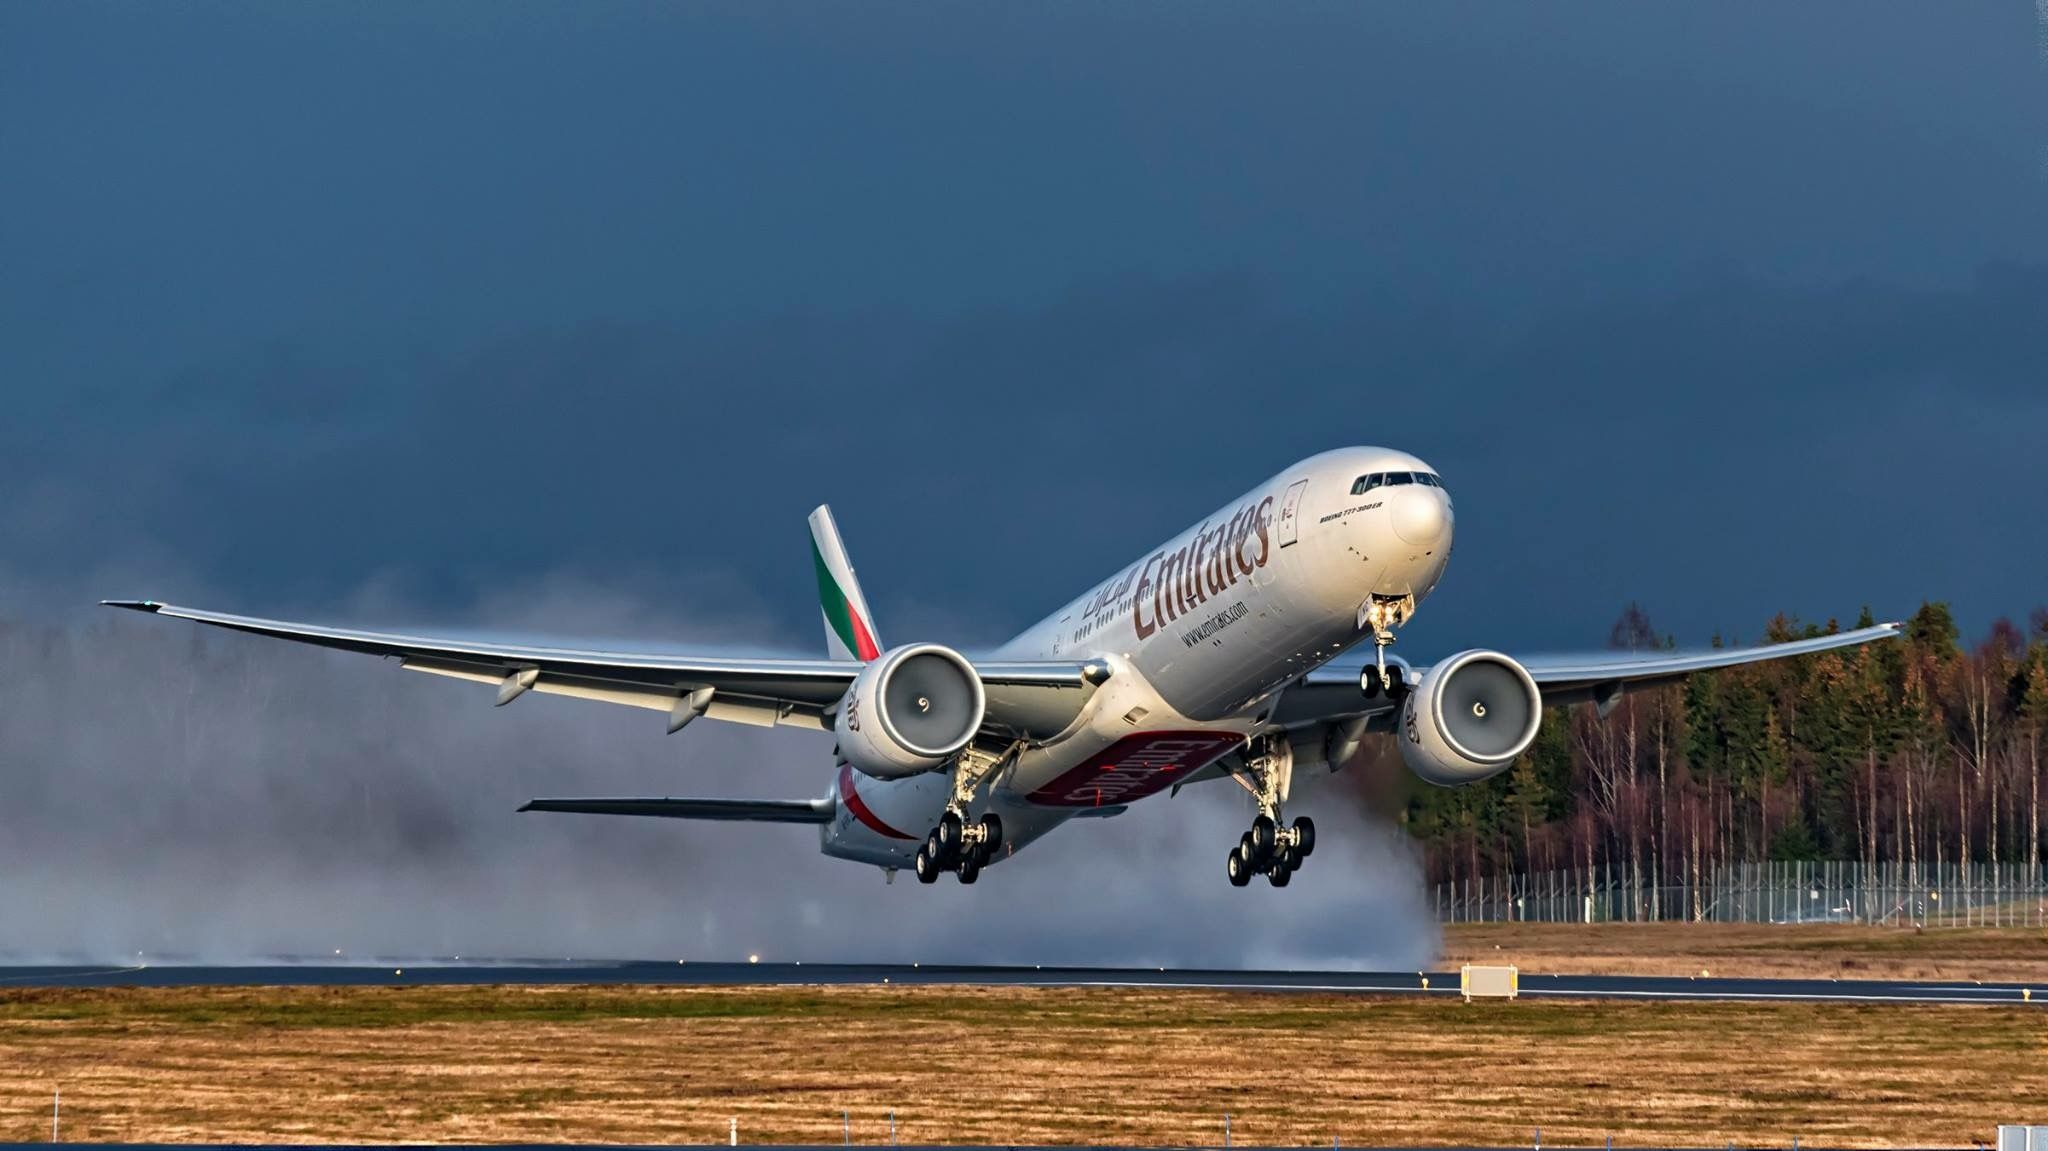 Emirates Airline Air Planes Radio Control Hd Wallpaper Passenger Aircraft Boeing 777 Aviation Wings Images